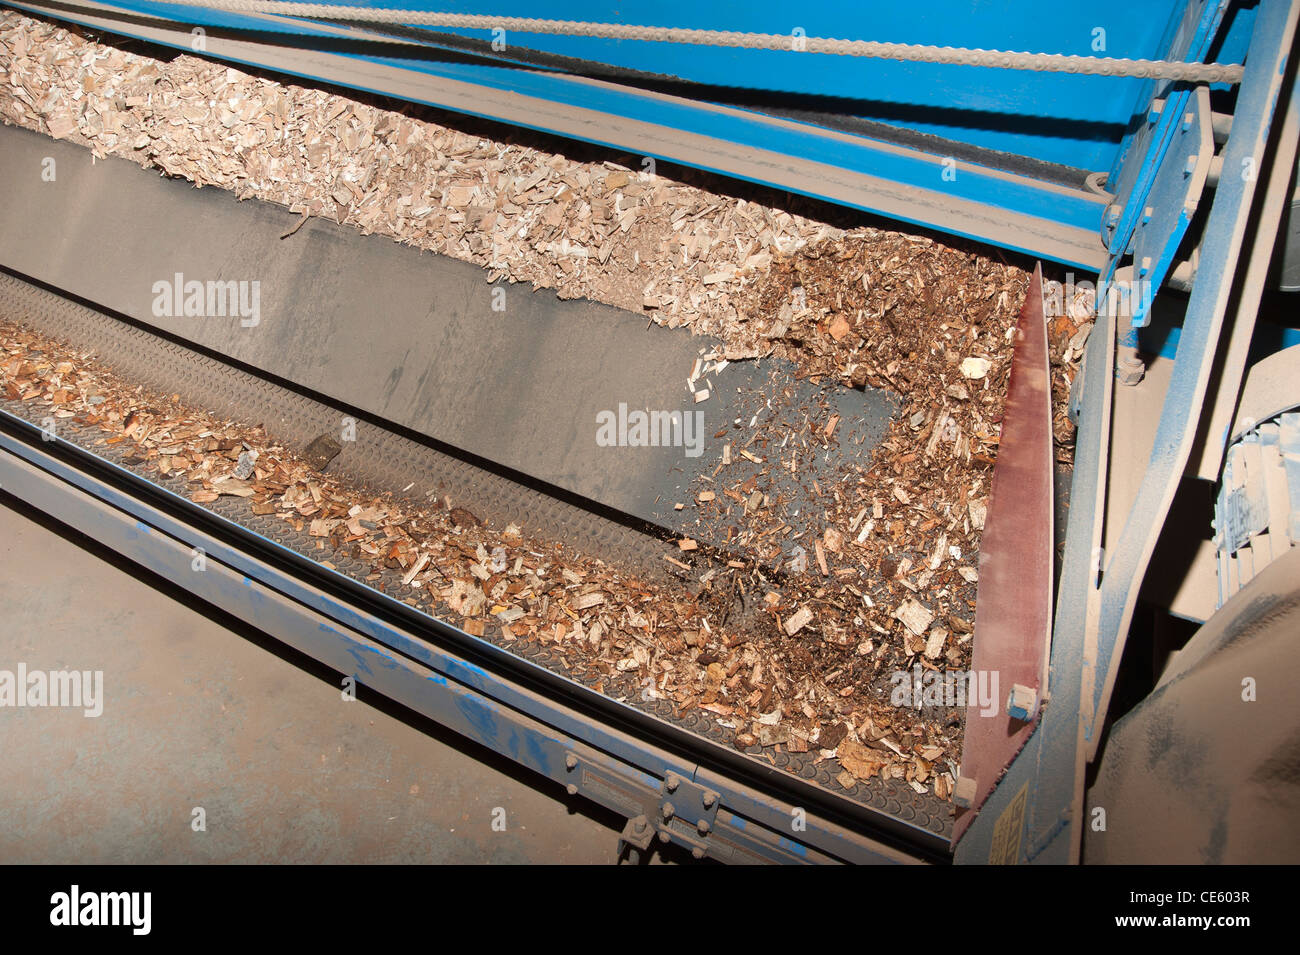 Automated chip collector used in a Biomass boiler in Darby, Montana. - Stock Image